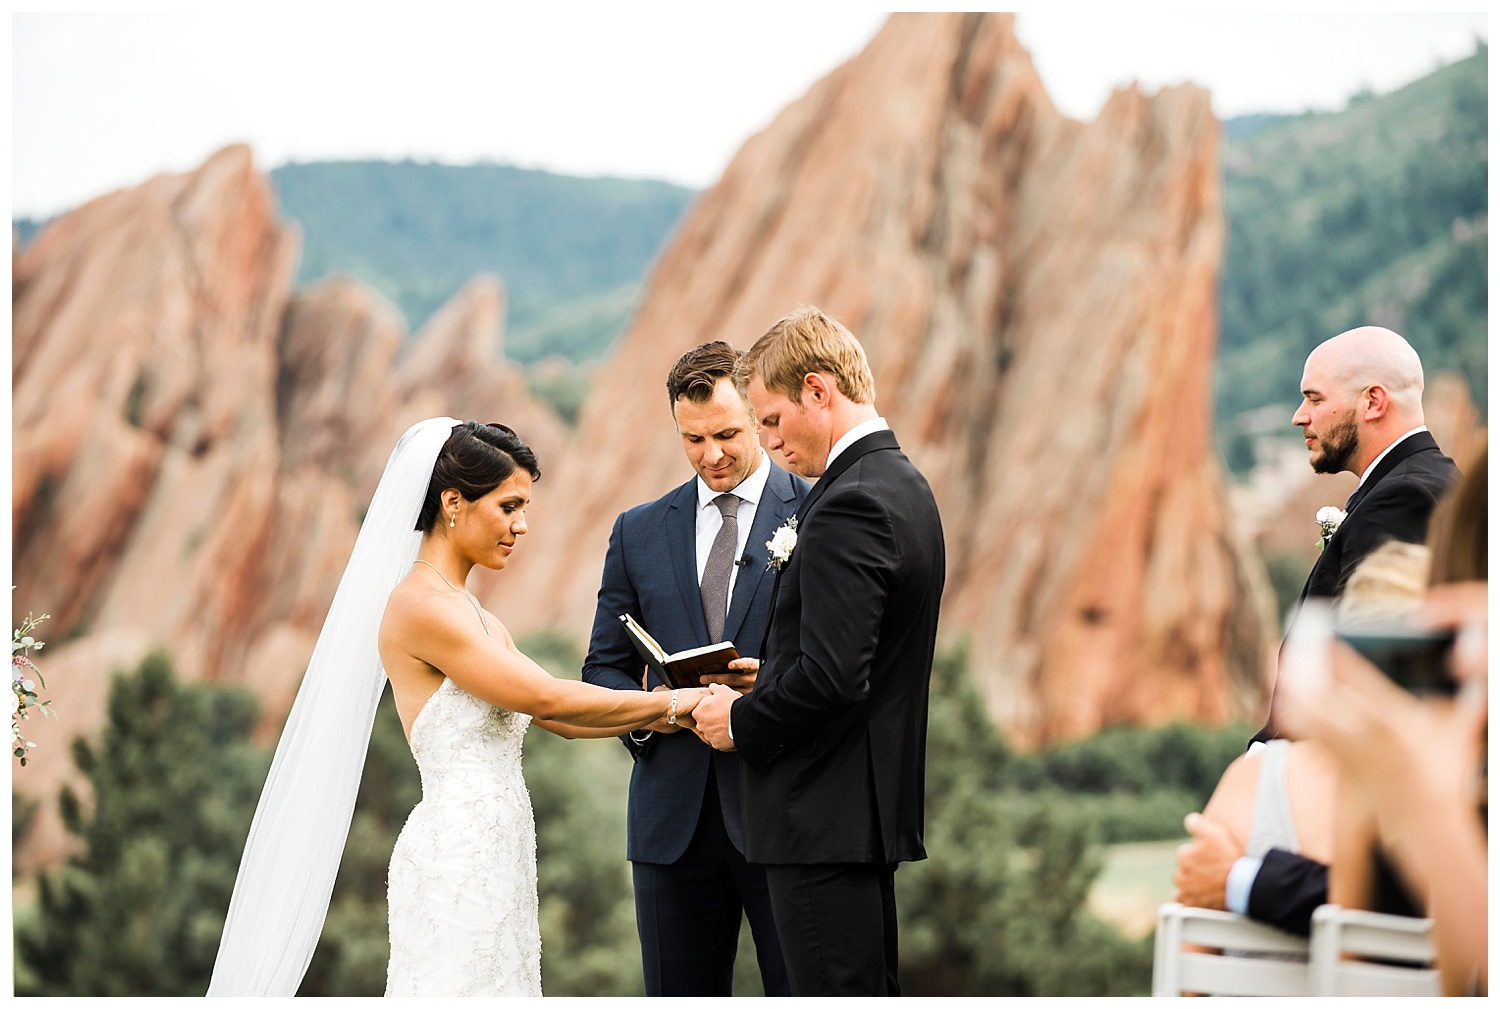 Arrowhead_Golf_Course_Wedding_Littleton_Colorado_Apollo_Fields_161.jpg